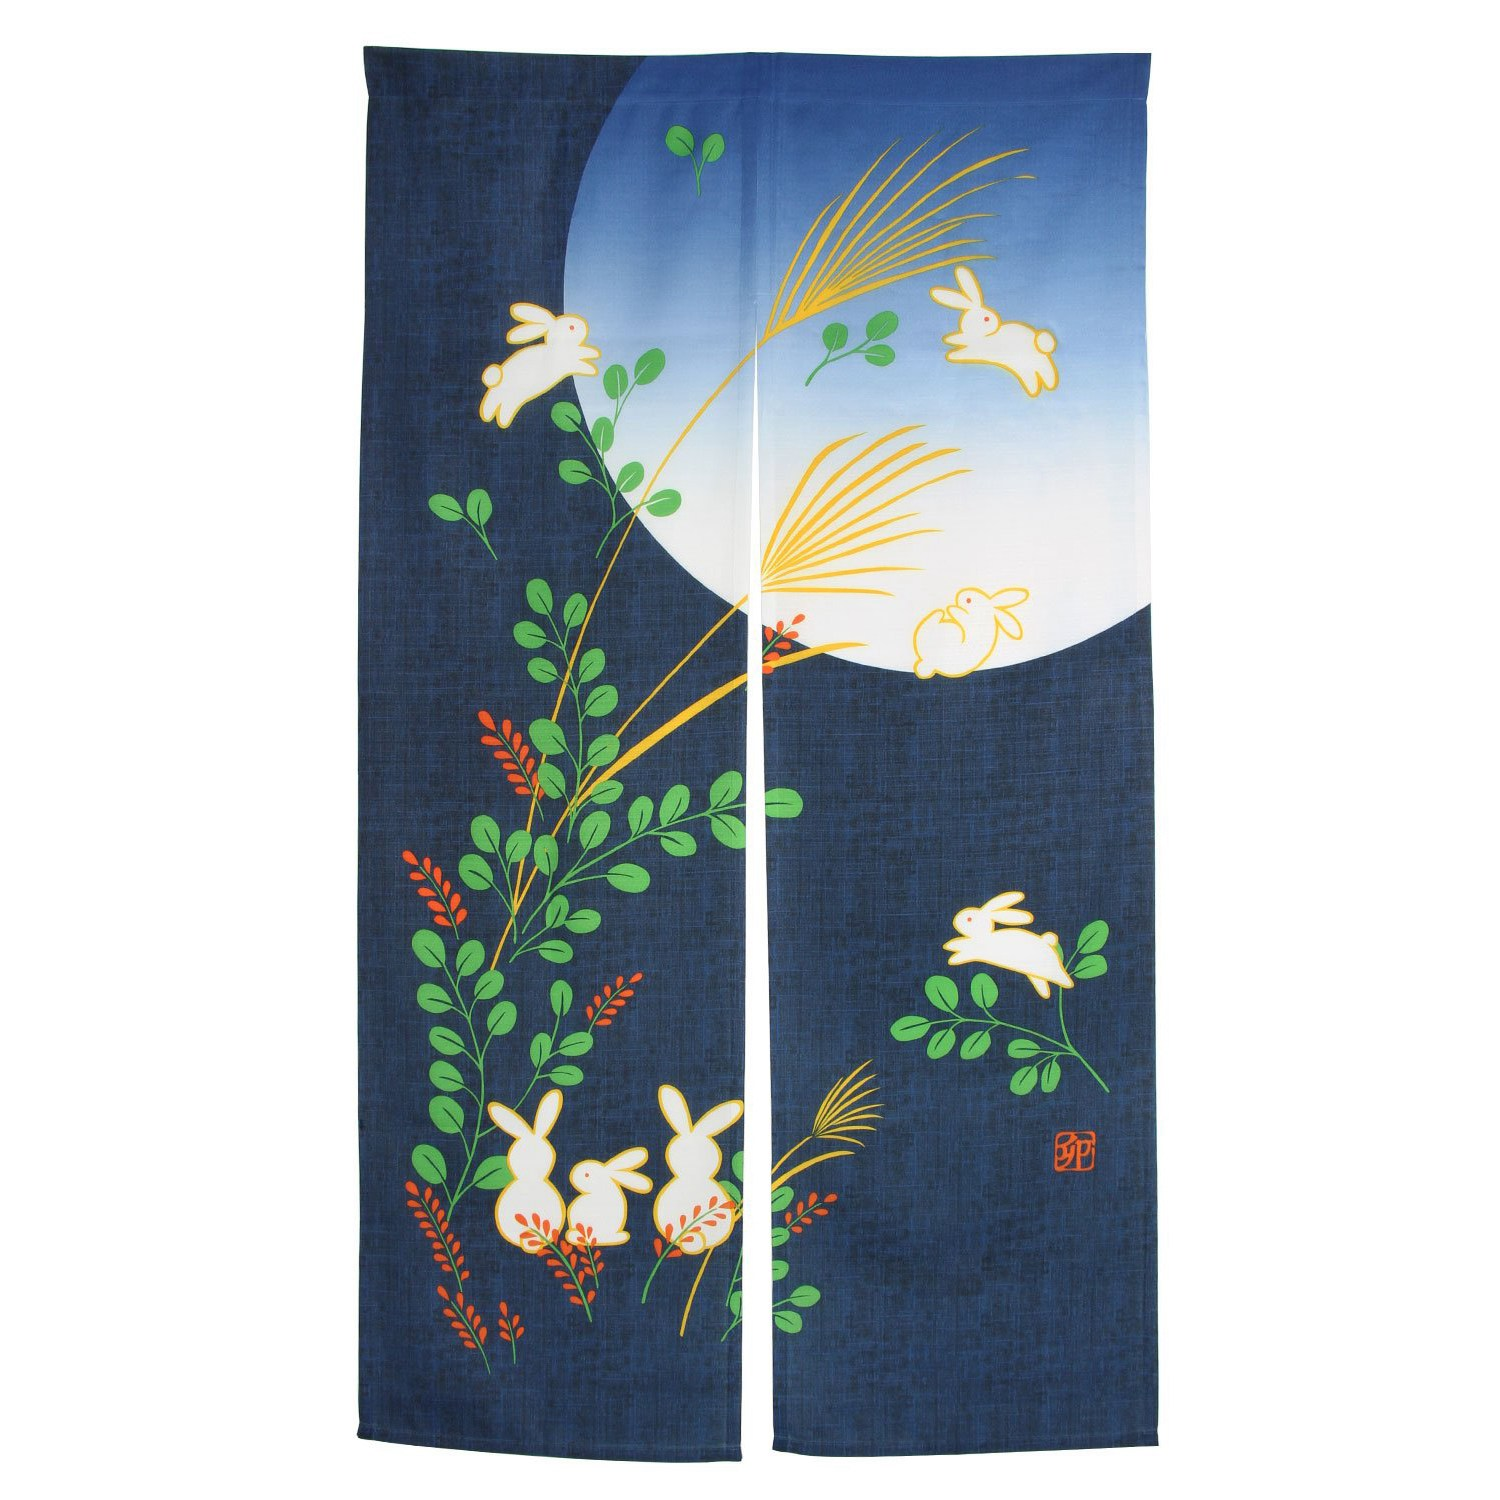 HHO-Japanese Doorway Curtain Noren Rabbit Under Moon For Home Decoration 85X150Cm